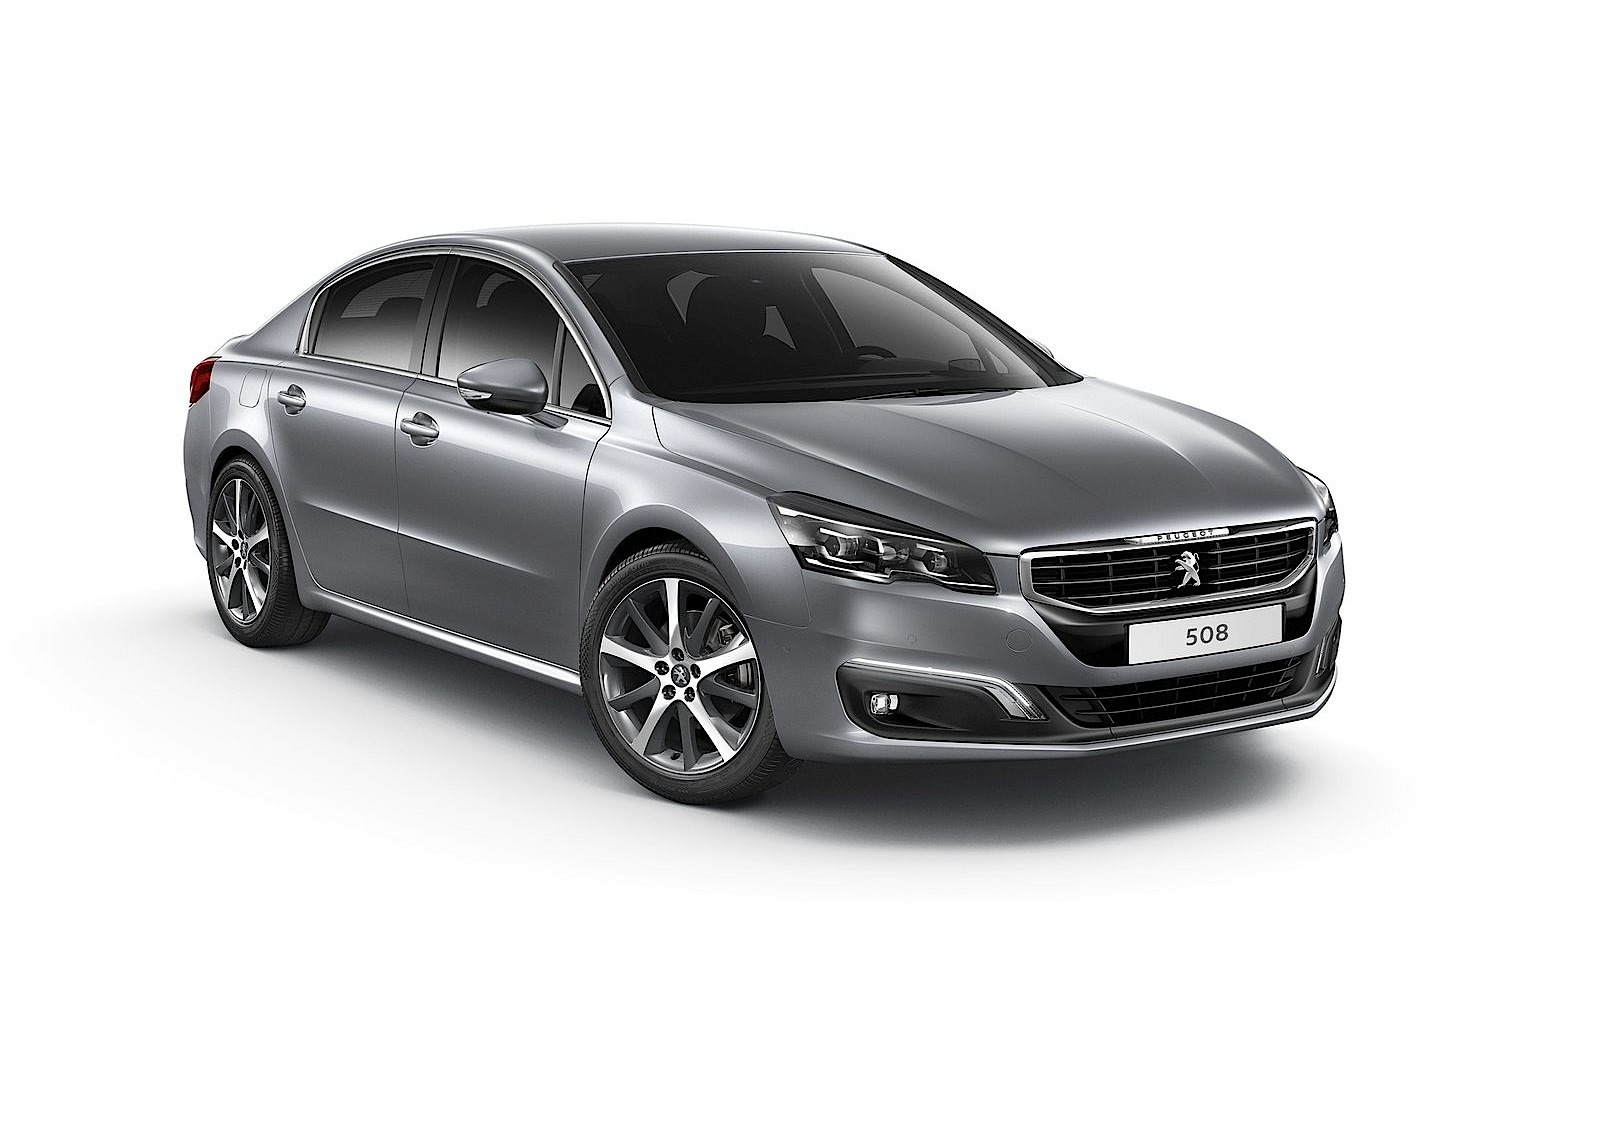 peugeot 508 specs 2014 2015 2016 2017 2018 autoevolution. Black Bedroom Furniture Sets. Home Design Ideas